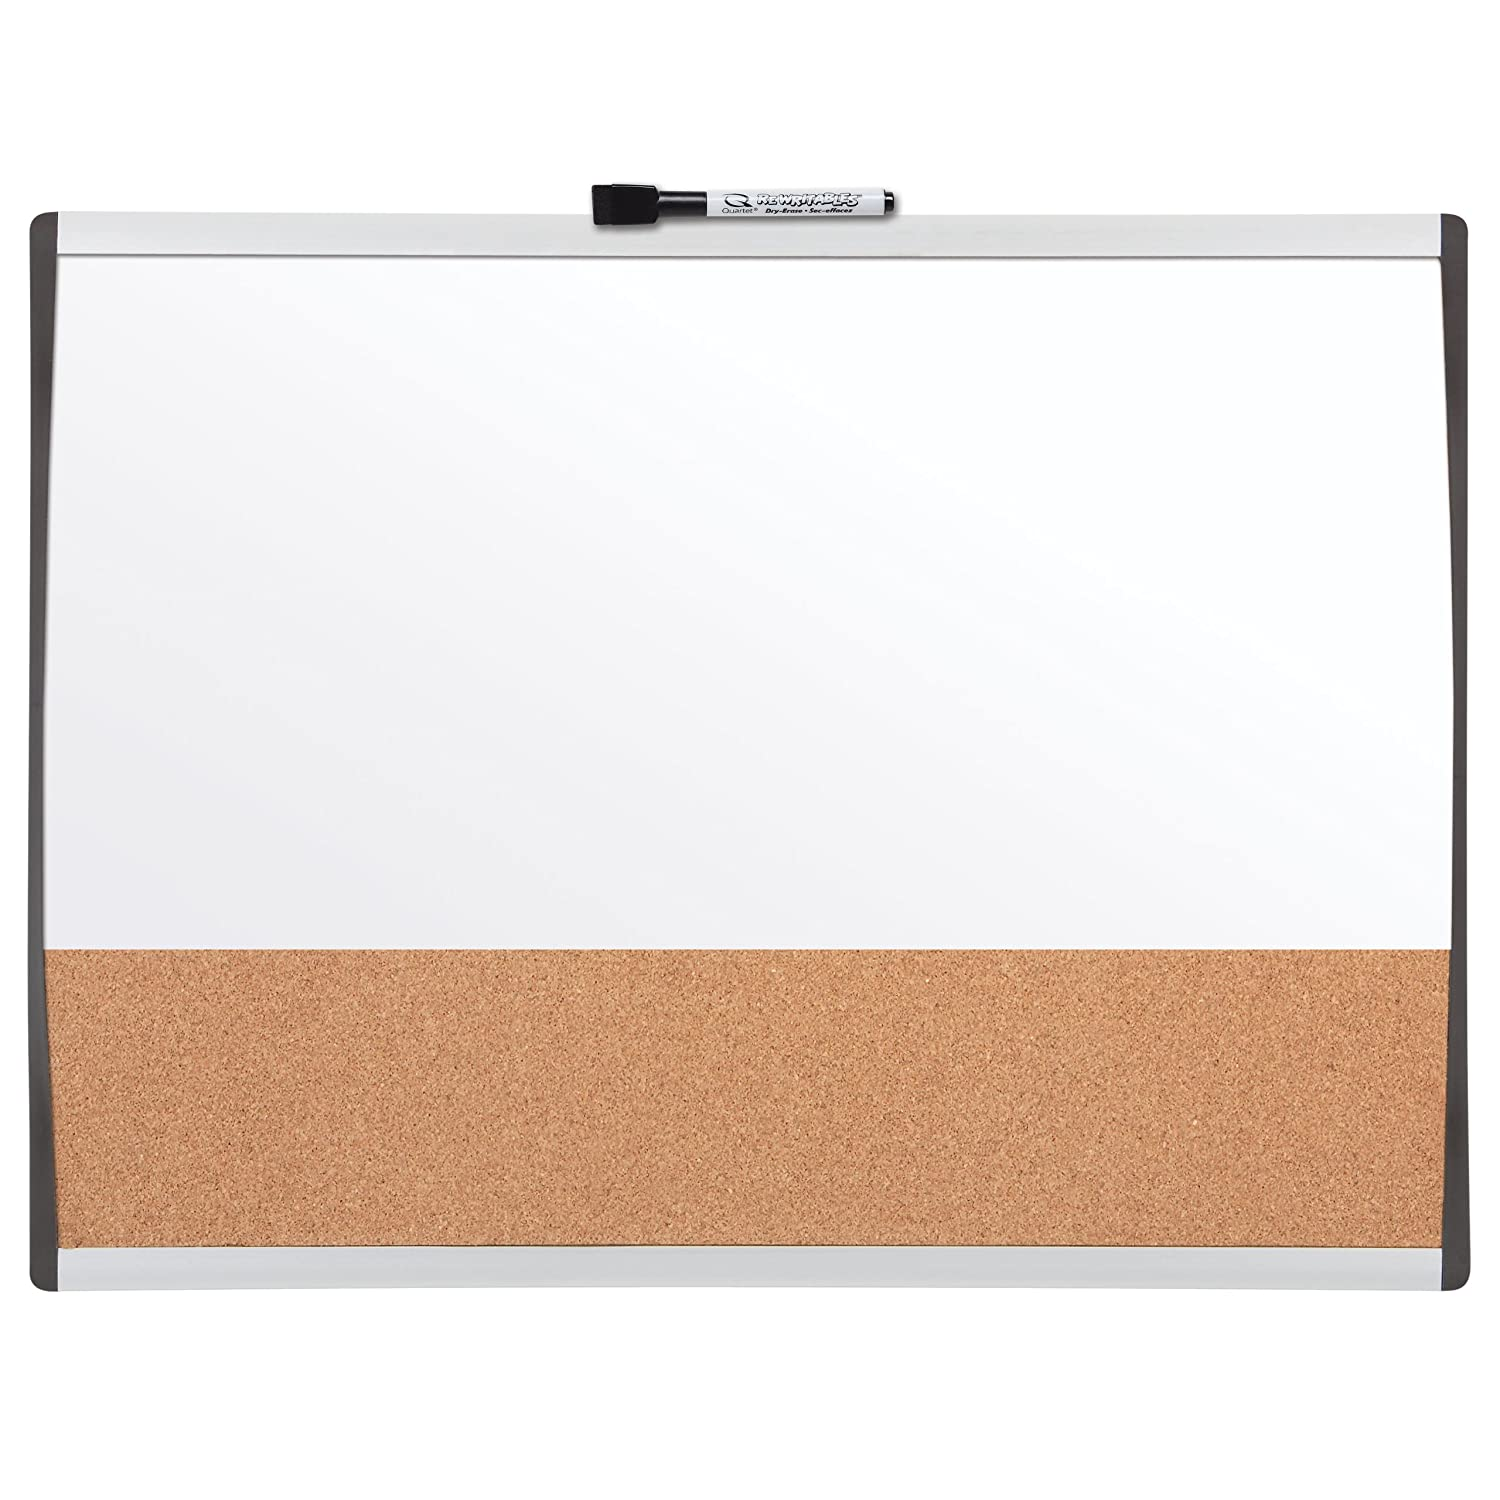 Dry Erase Calendar And Cork Board Combo : Combination boards dry erase for home and office combo